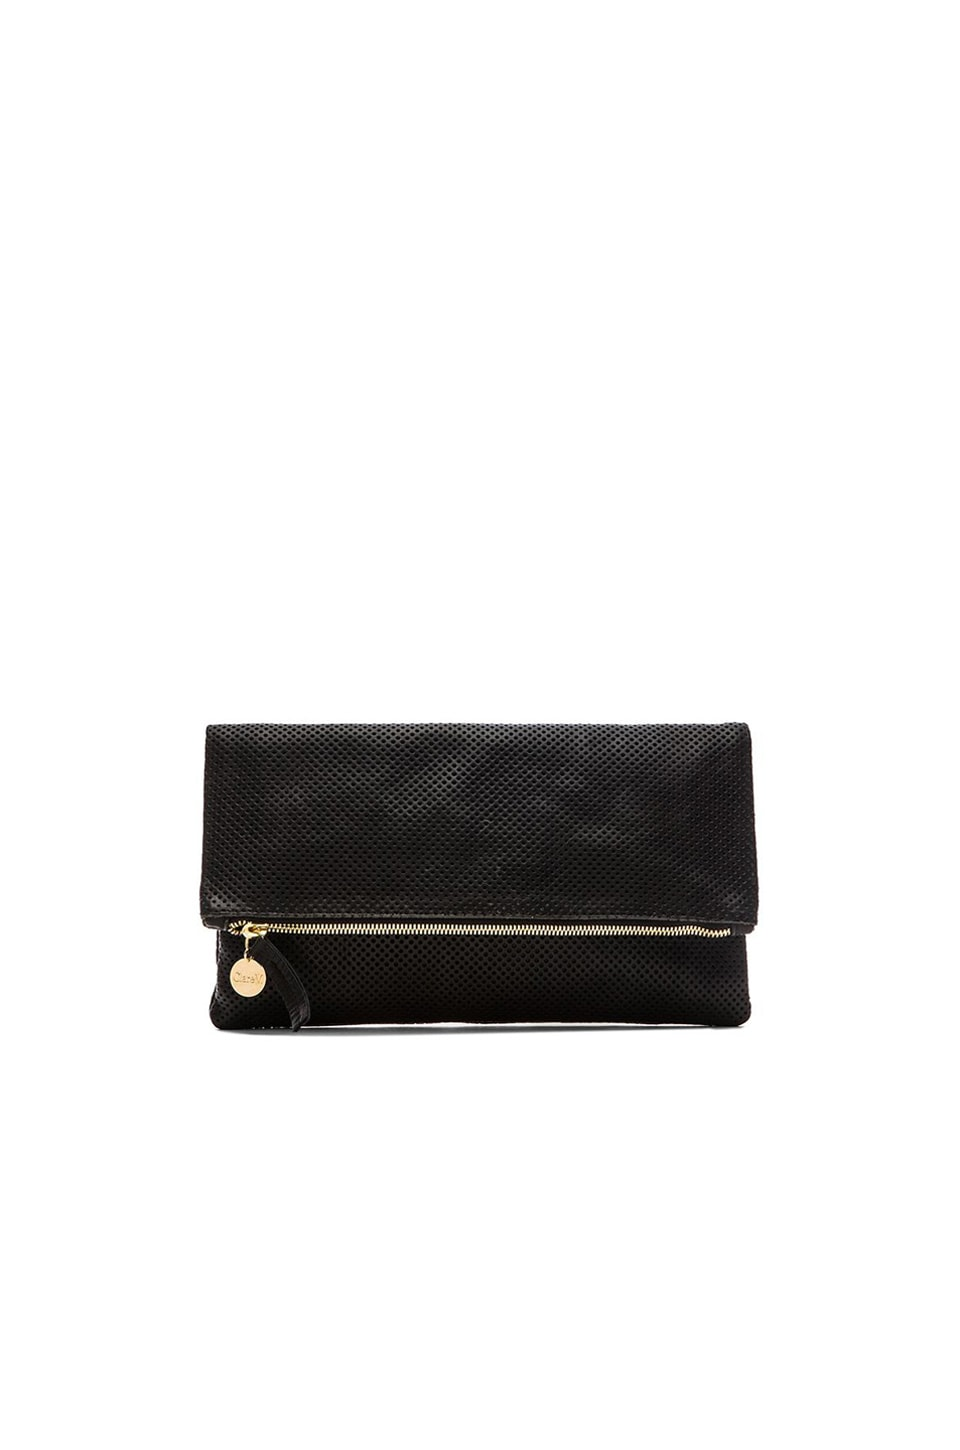 Clare V. Foldover Clutch in Black Perf